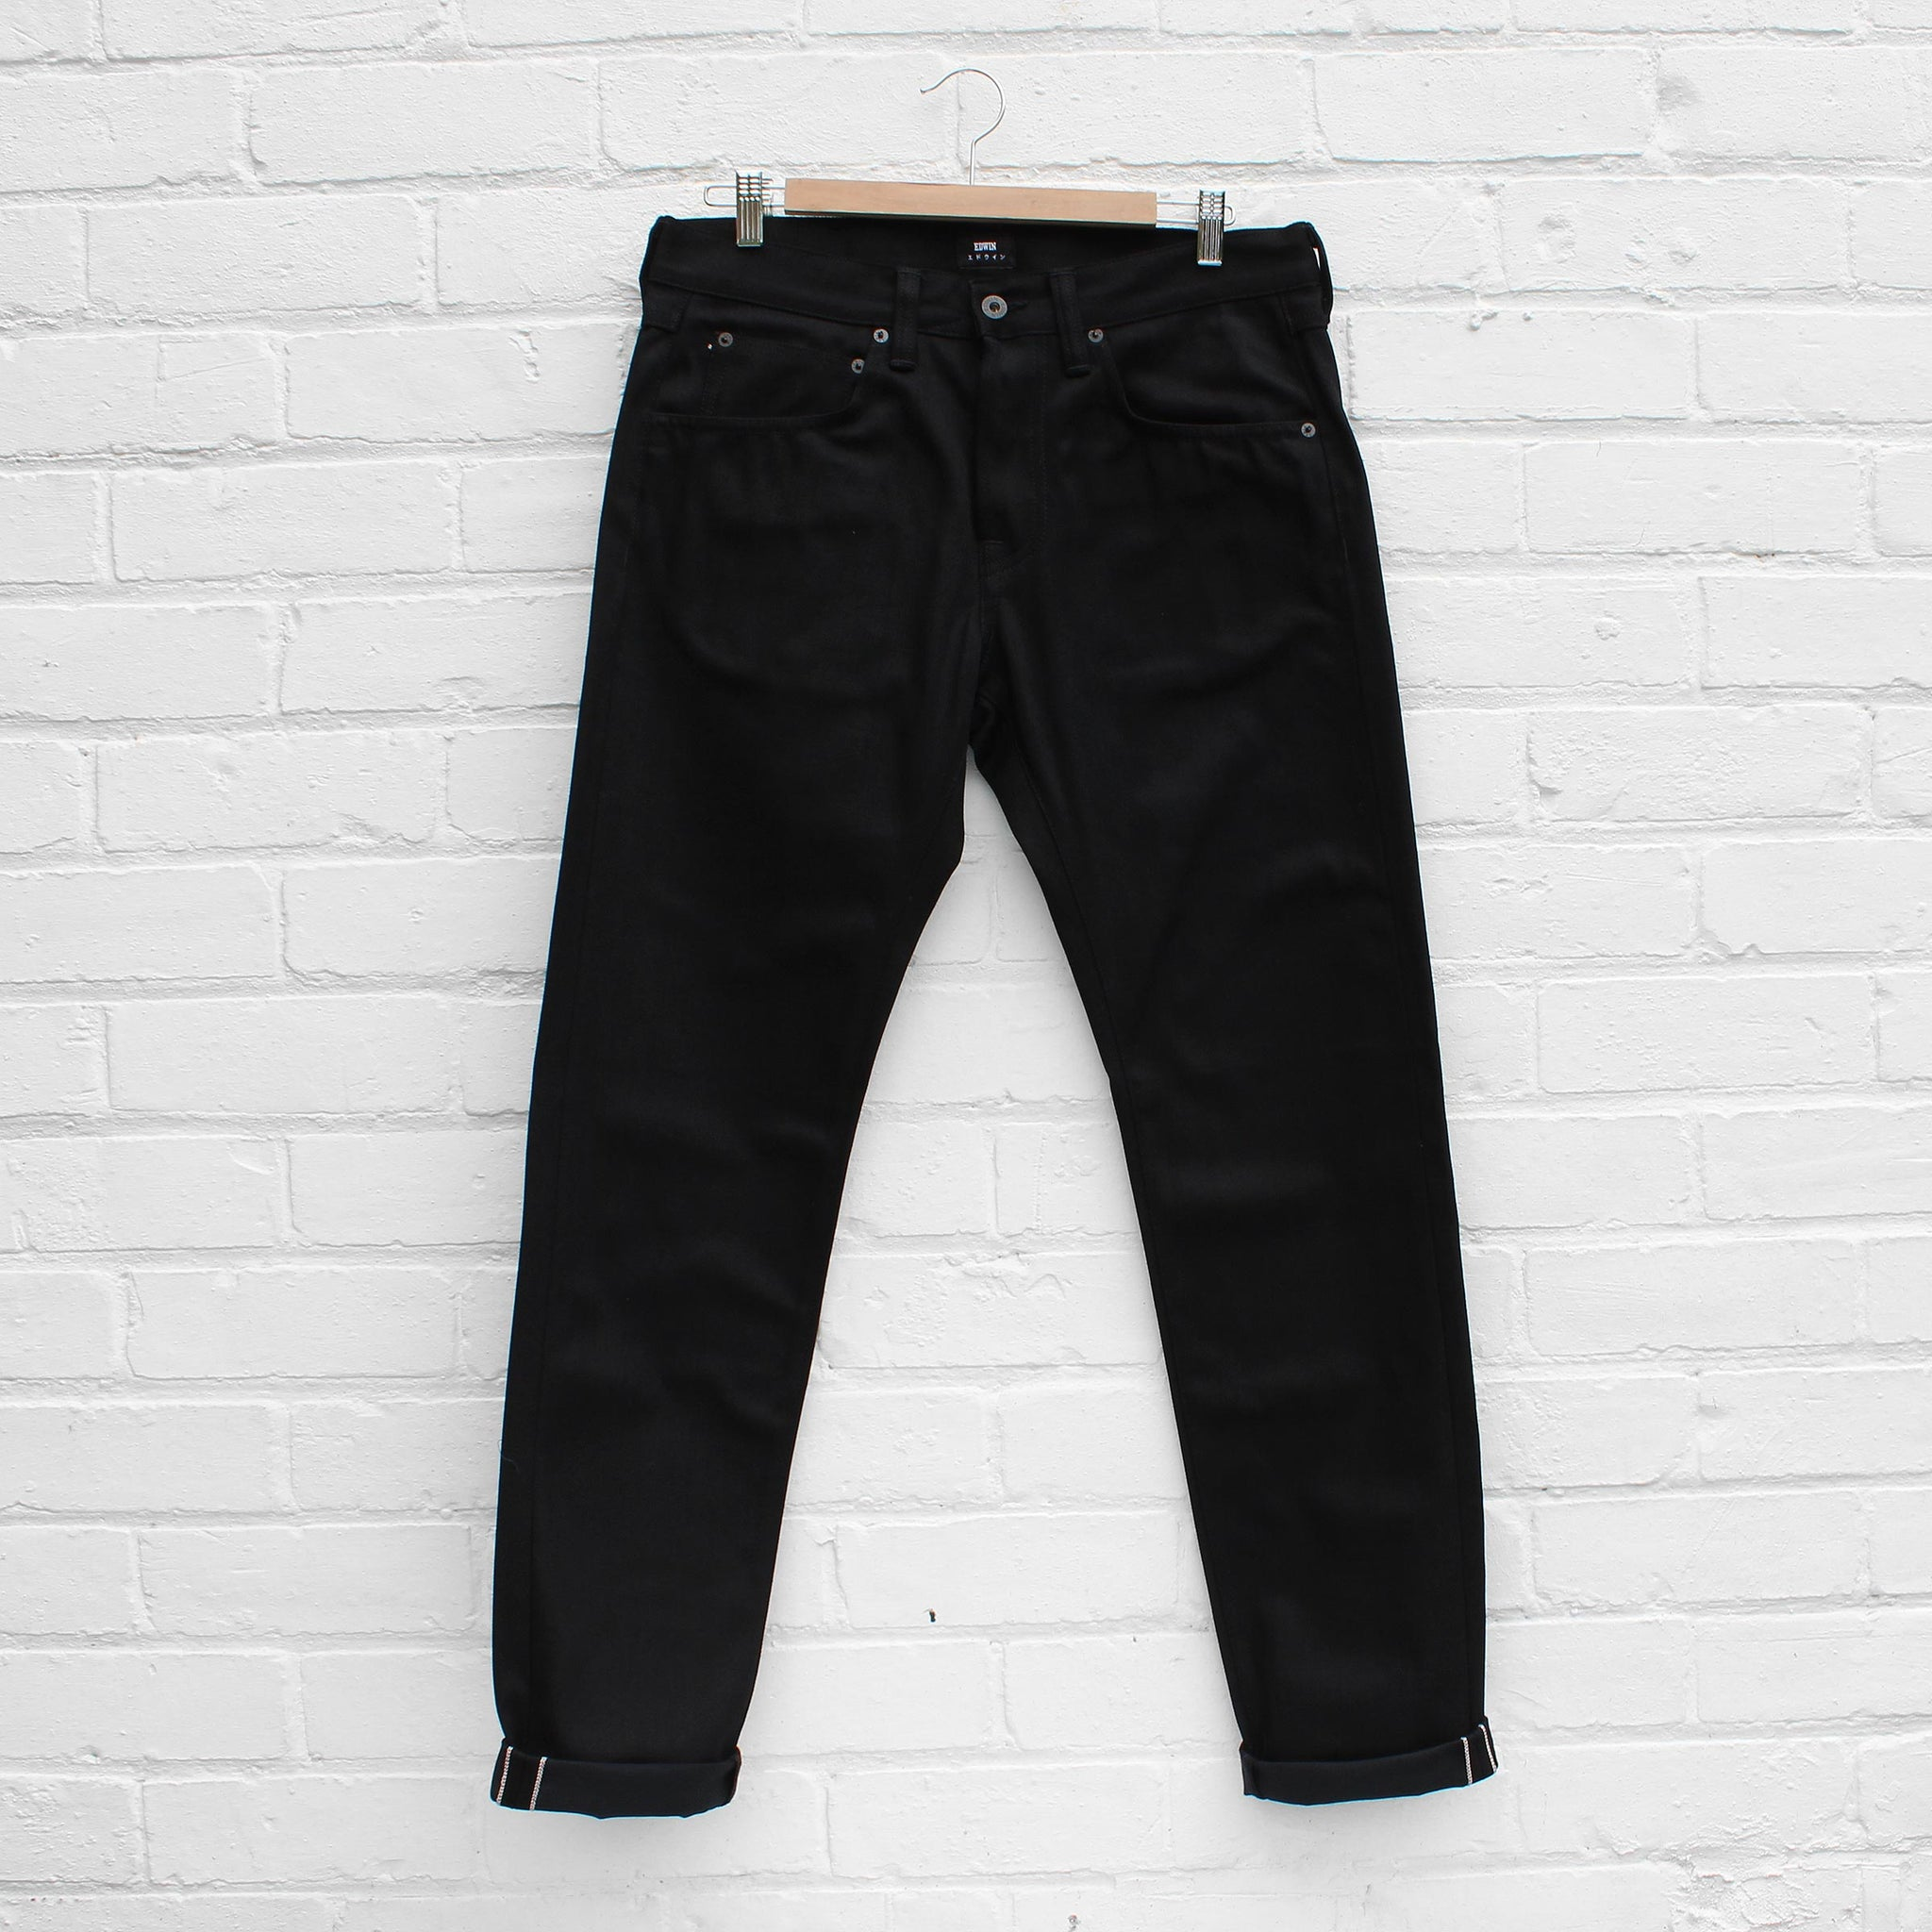 a818bf19 EDWIN ED-55 - Red Listed Black Selvage Denim - Unwashed – FUSShop